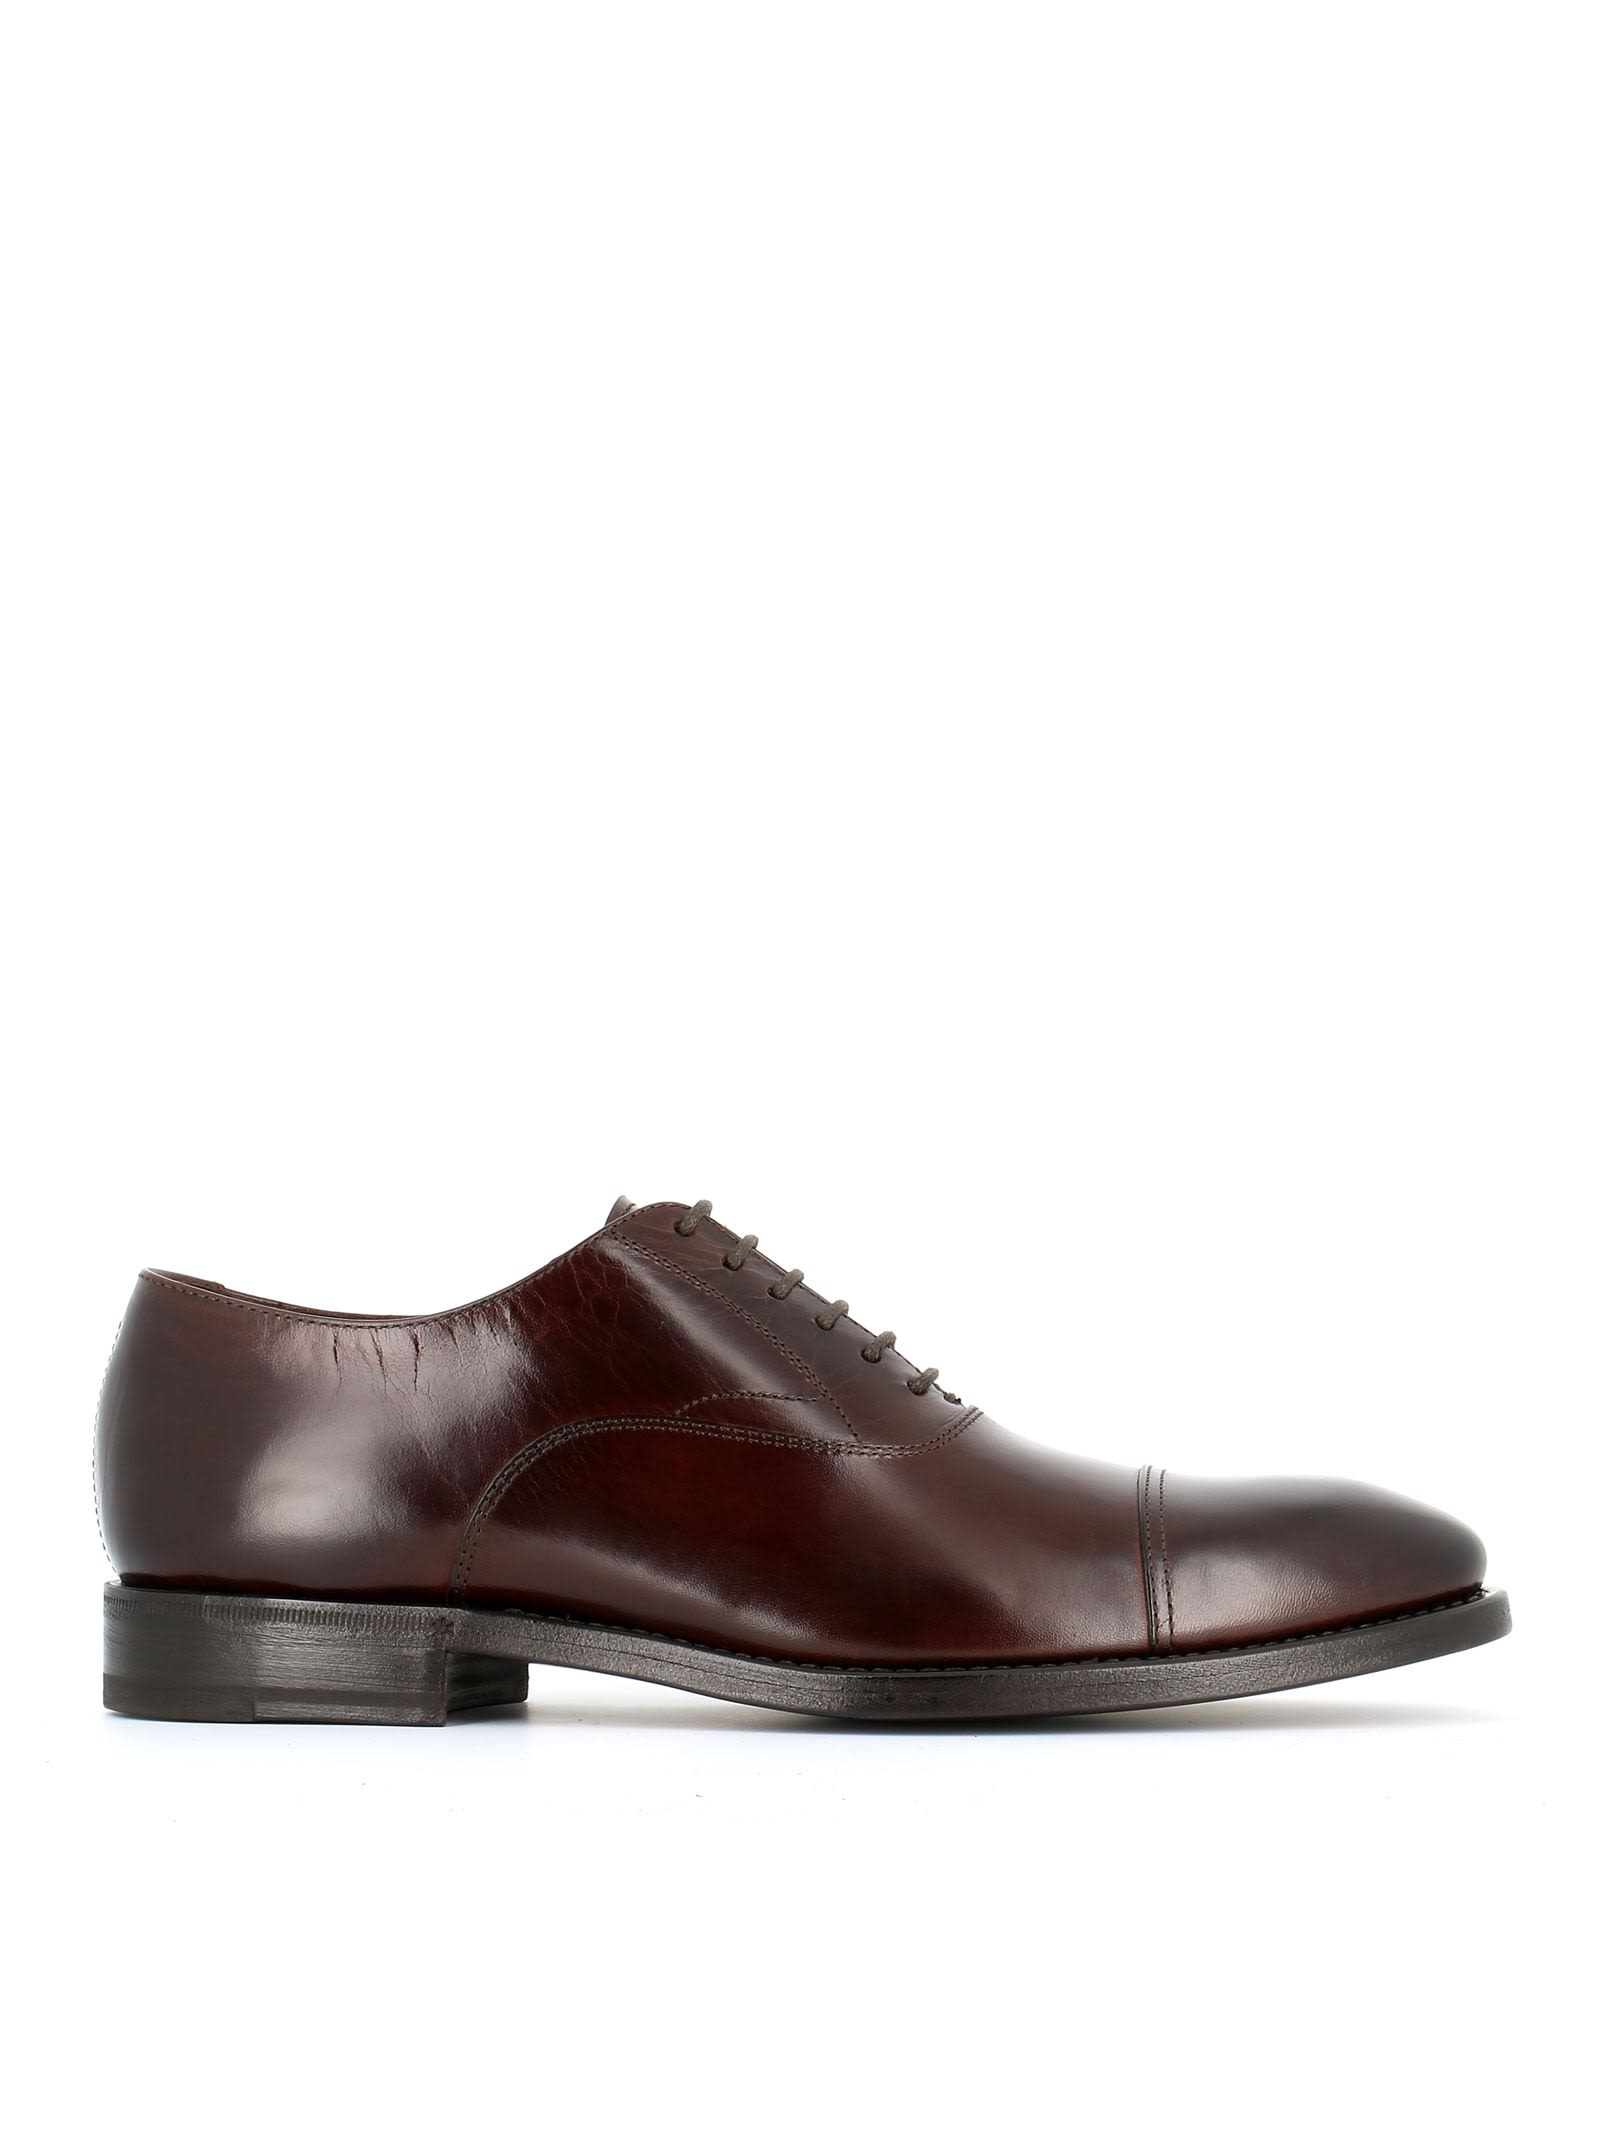 Henderson Classic Oxford Shoes